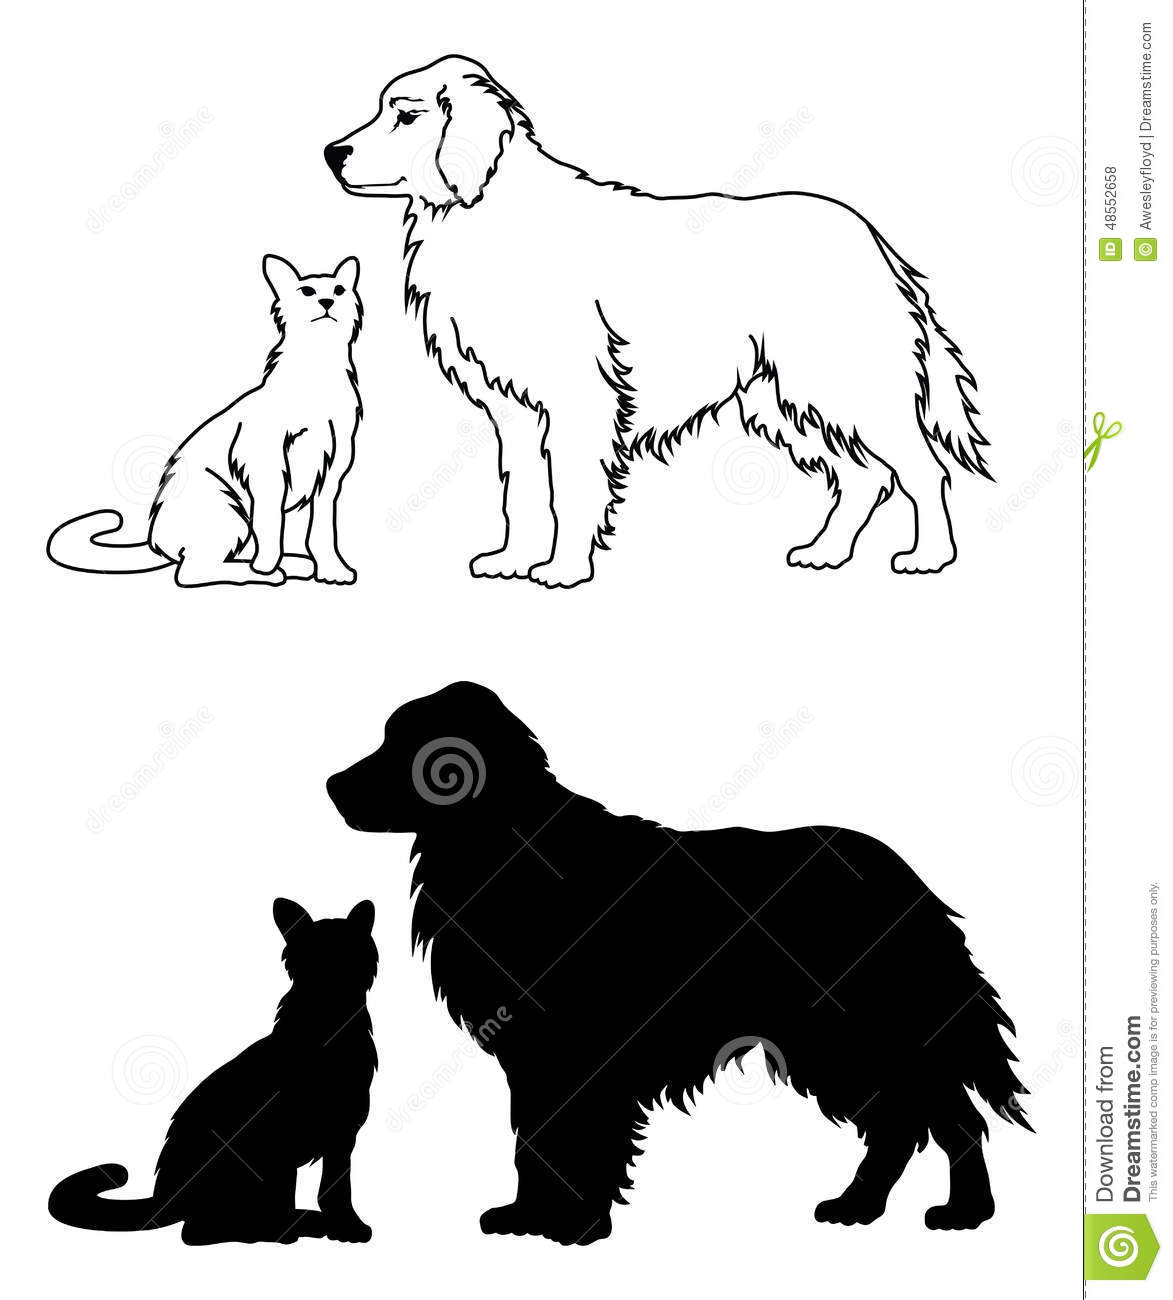 10 Little Known Mysterious Ghost Types as well Stock Illustration Stylised Dog Illustration in addition E7 AE 80 E5 8D 95 E7 9A 84 E7 94 BB E5 8A A8 E7 89 A9 besides Free black dog clipart together with E7 8A AC E3 81 AE E3 82 B7 E3 83 AB E3 82 A8 E3 83 83 E3 83 88 Gm528179911 53927456. on dog outline